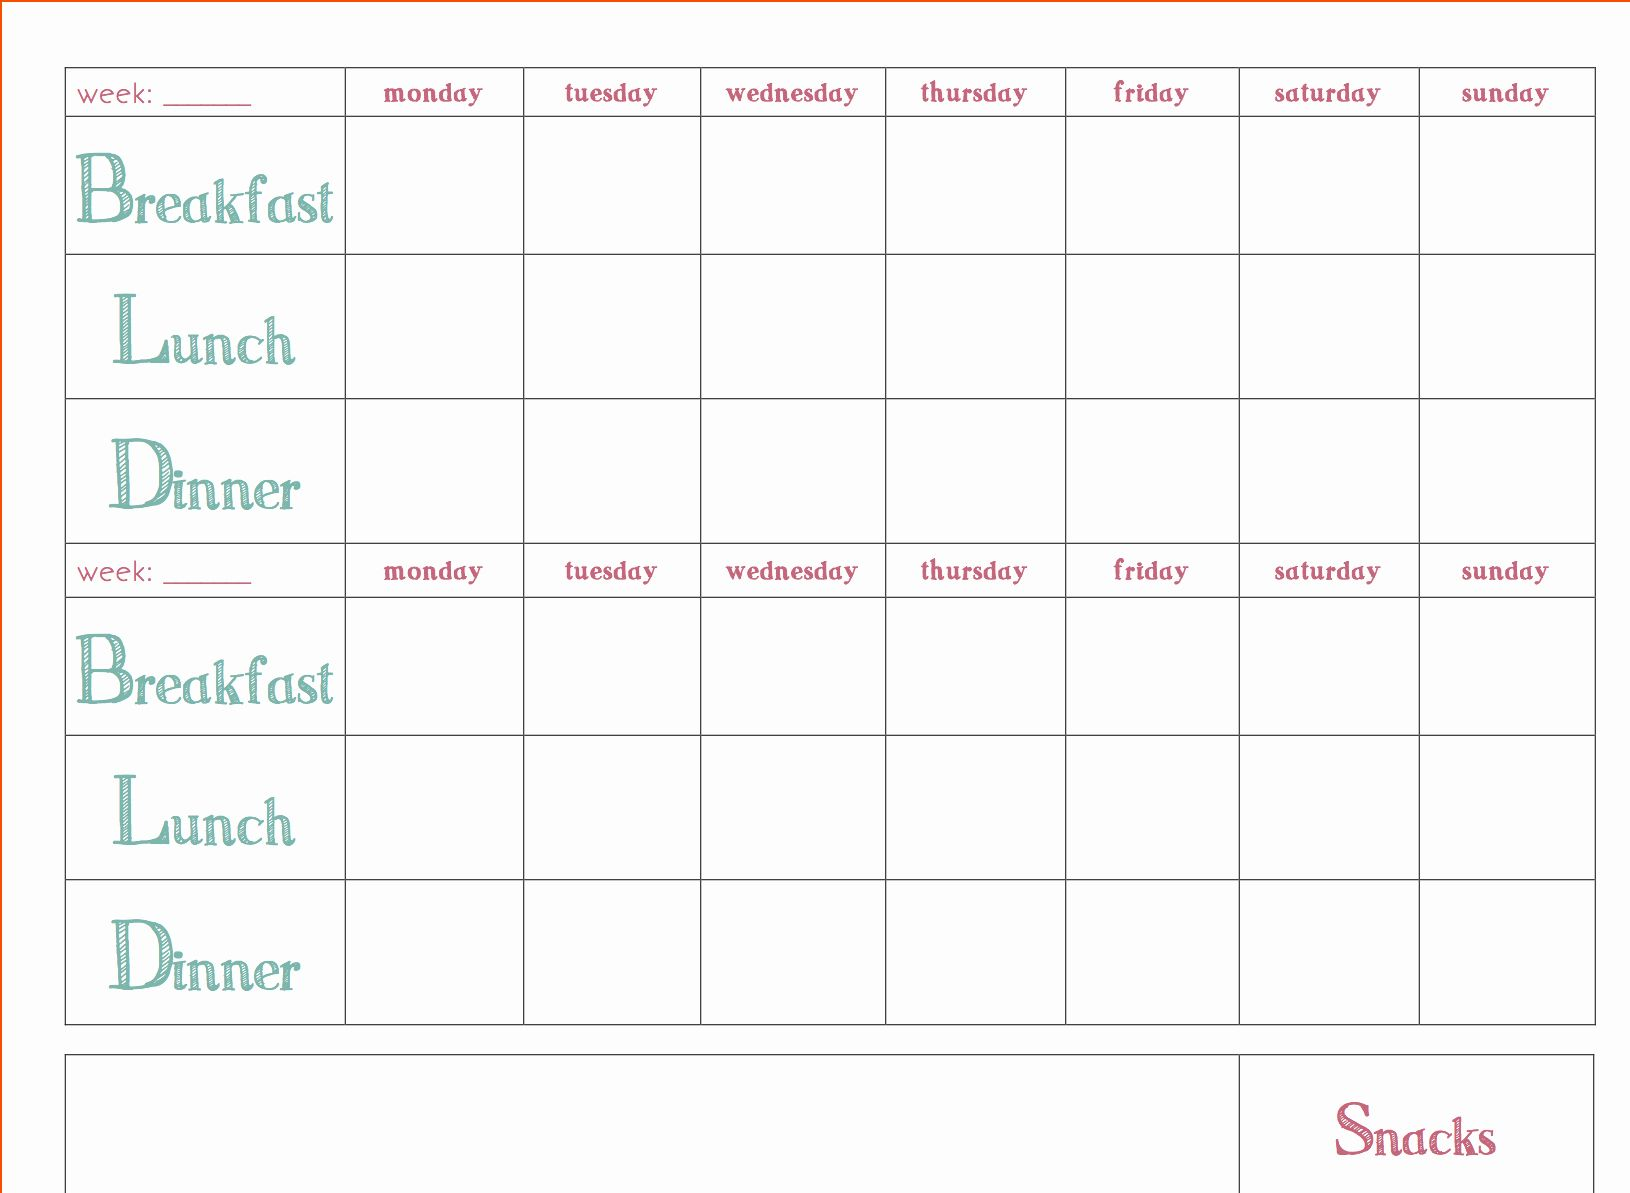 Weekly Meal Planner Template Word Fresh Free Download Weekly Meal Planner Template Weekly Meal Planner Template Menu Planning Template Meal Planner Template